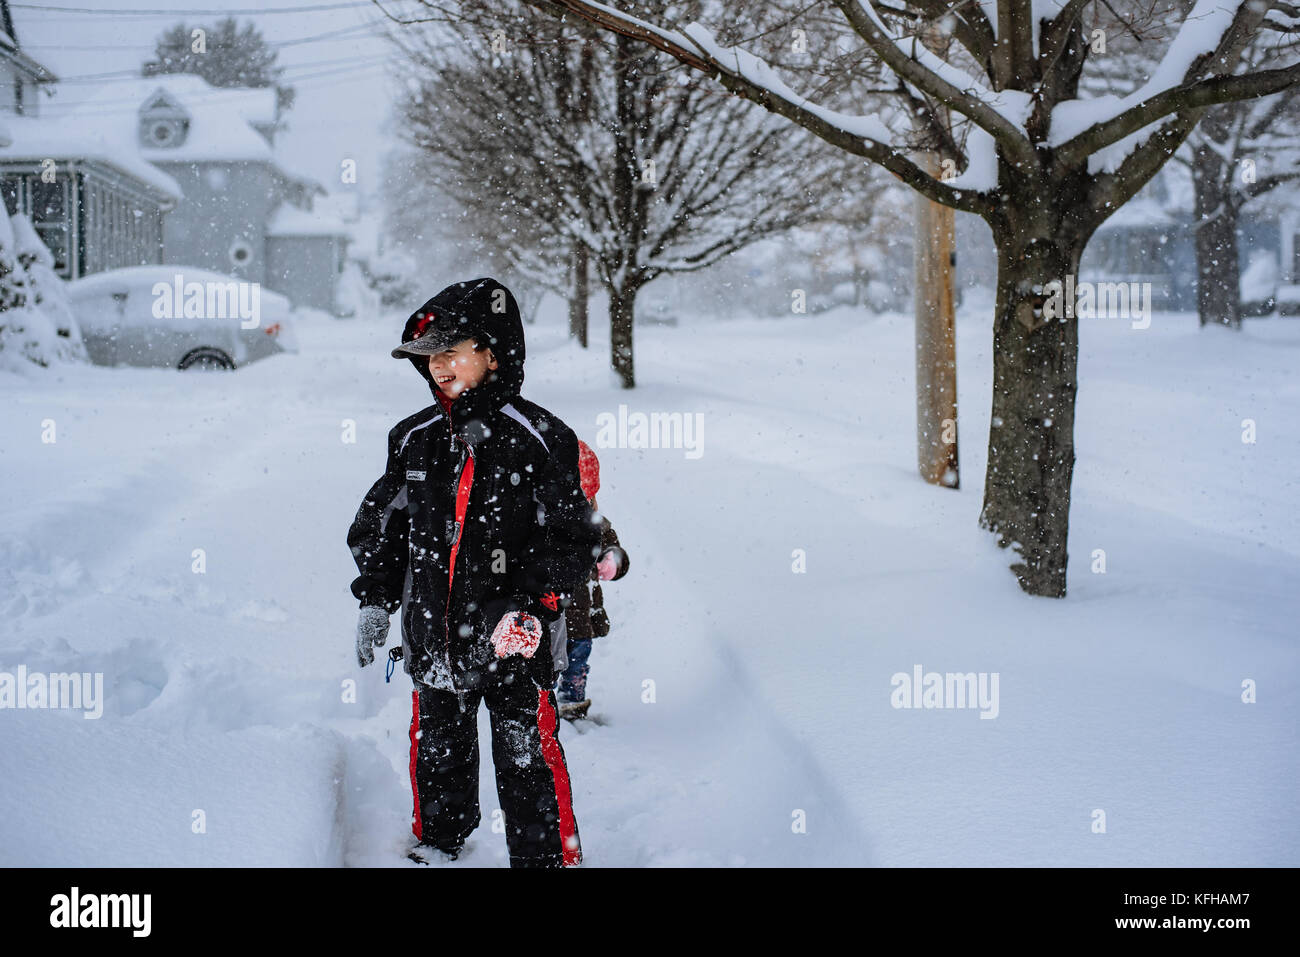 10-11 year old boy standing in snow - Stock Image